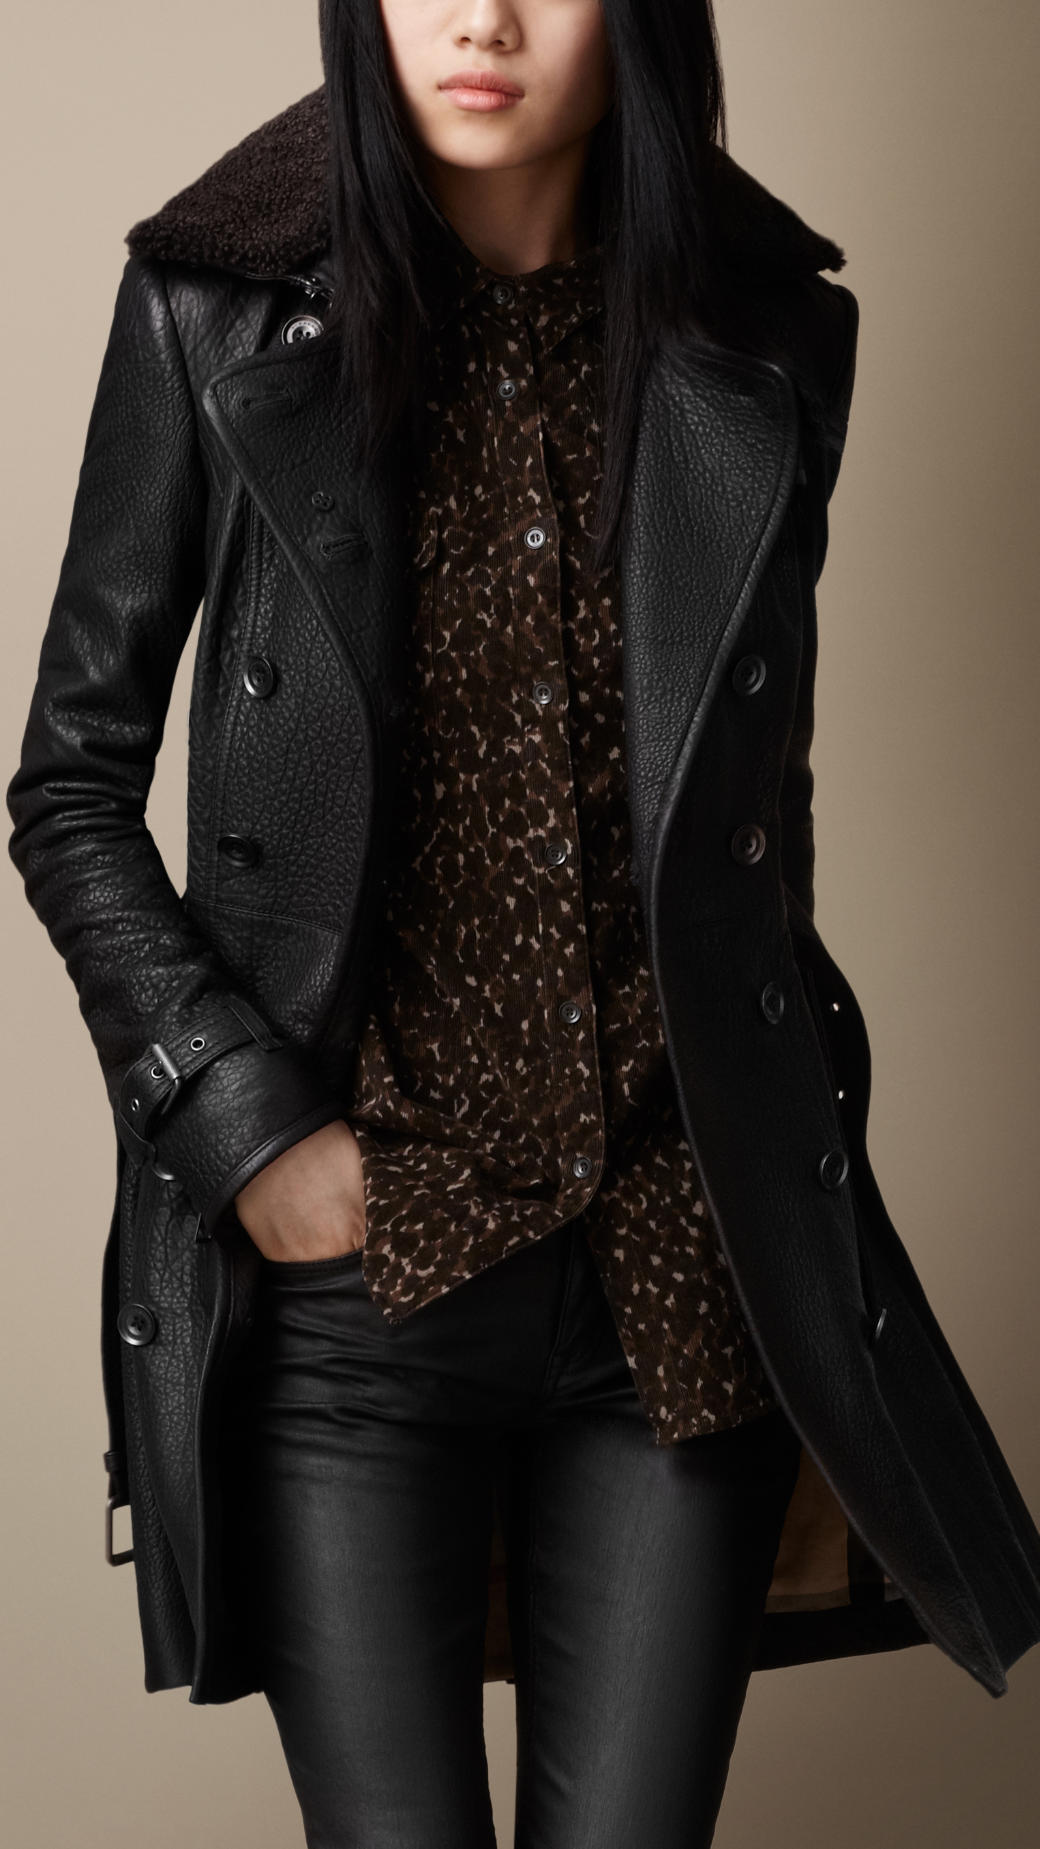 A leather jacket is a jacket-length coat that is usually worn on top of other apparel or item of clothing, and made from the tanned hide of various animals. The leather material is typically dyed black, or various shades of brown, but a wide range of colors is possible.